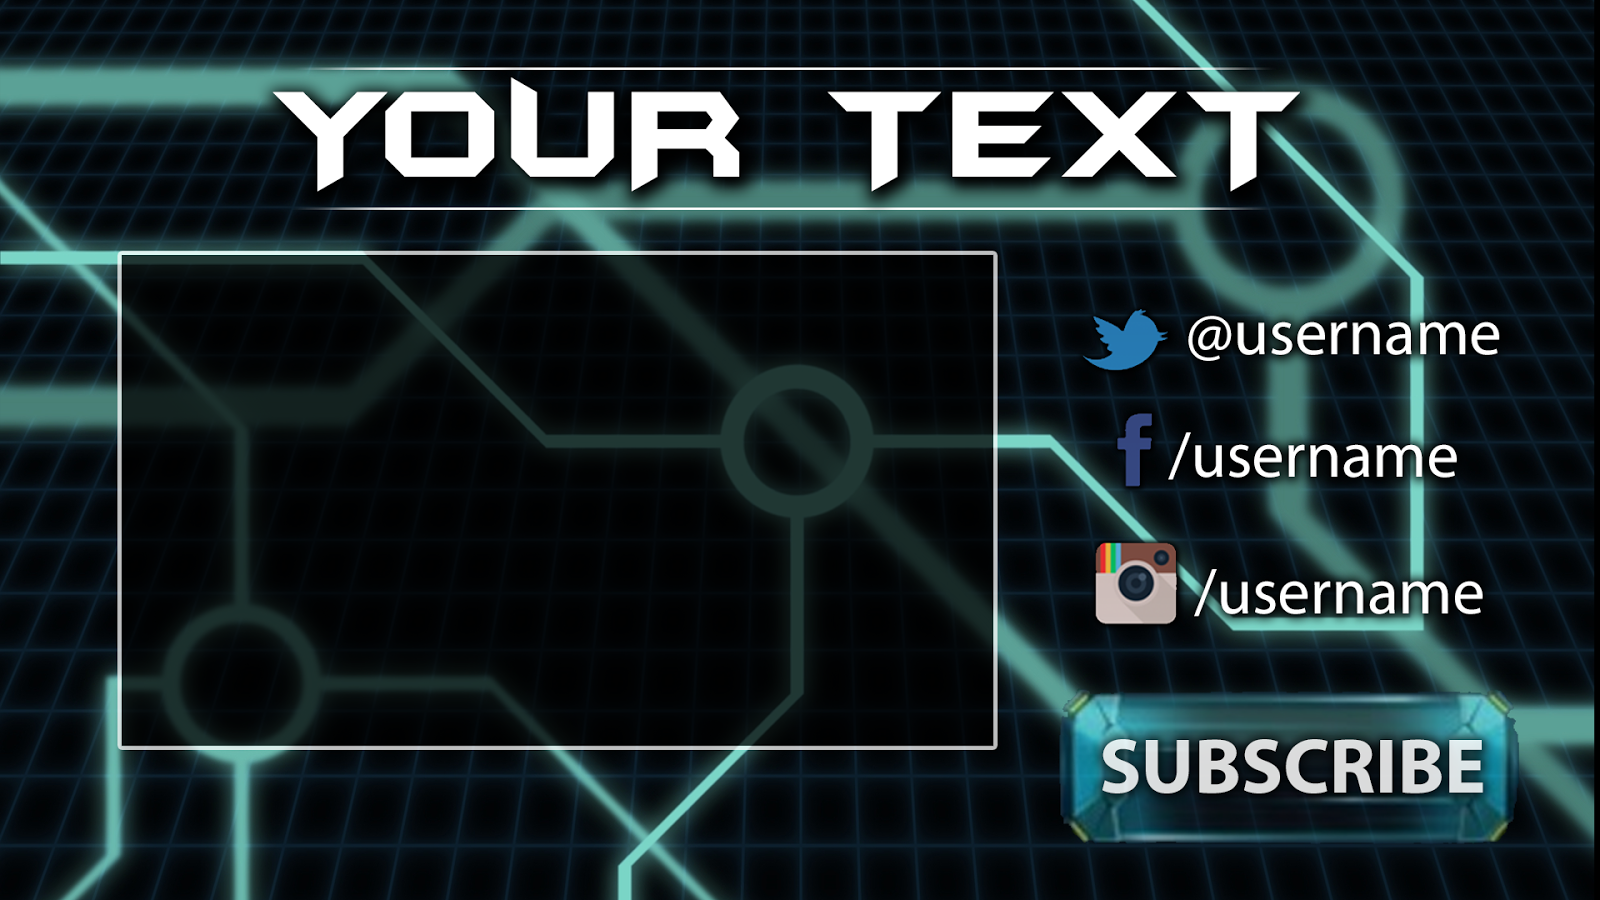 Tron gaming youtube outro template free download outro for Blank outro template